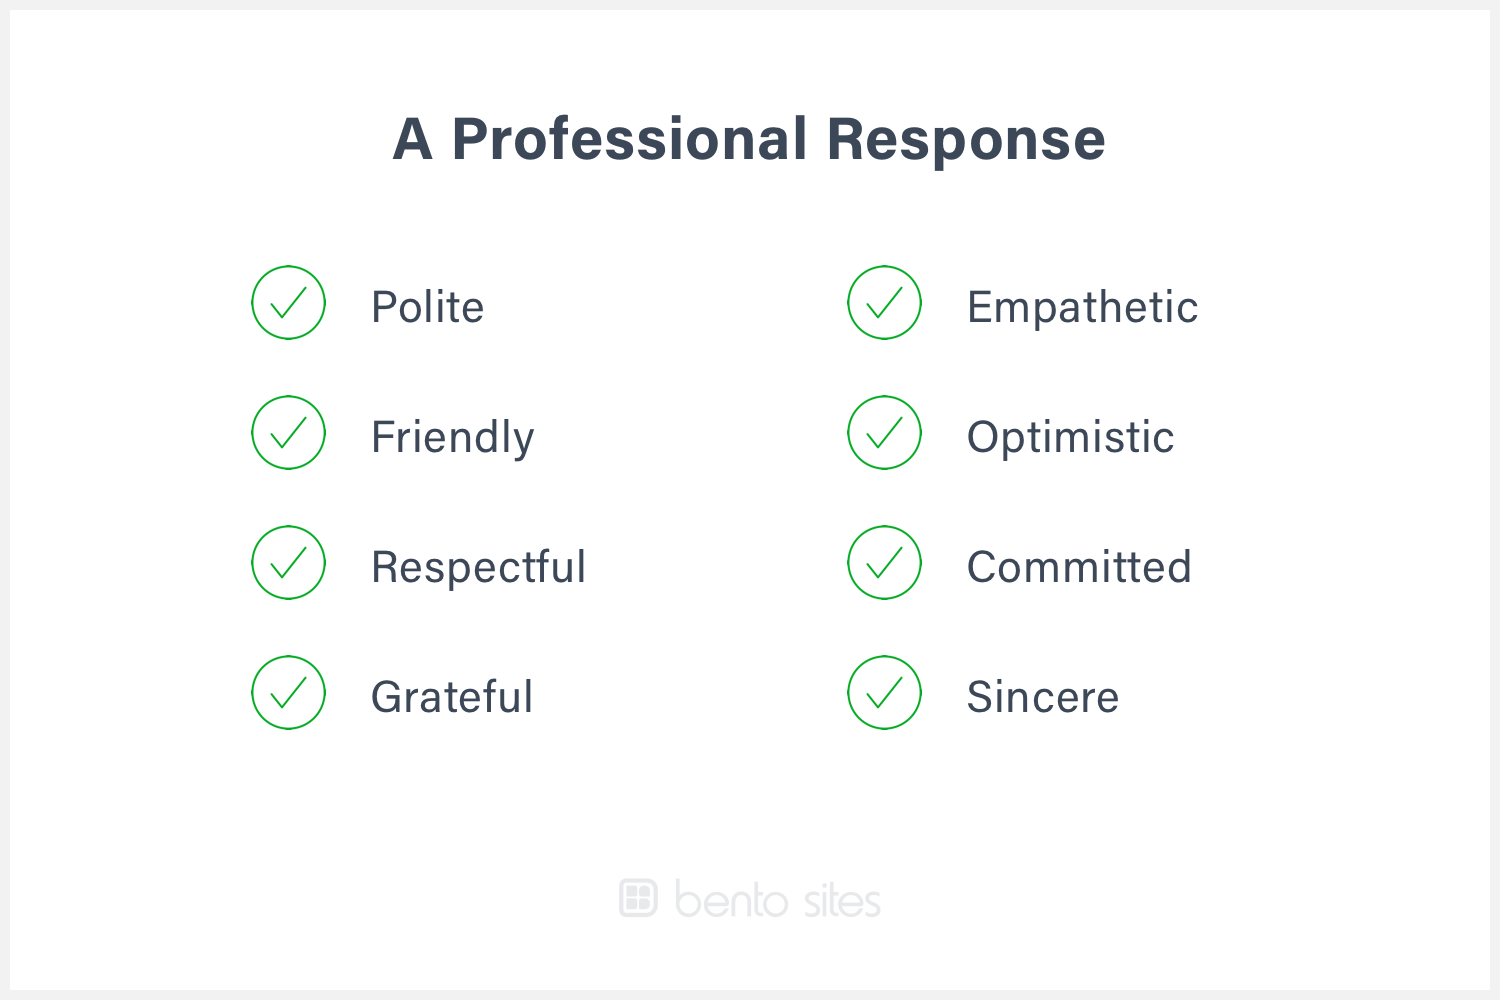 List of positive adjectives for responding professionally.